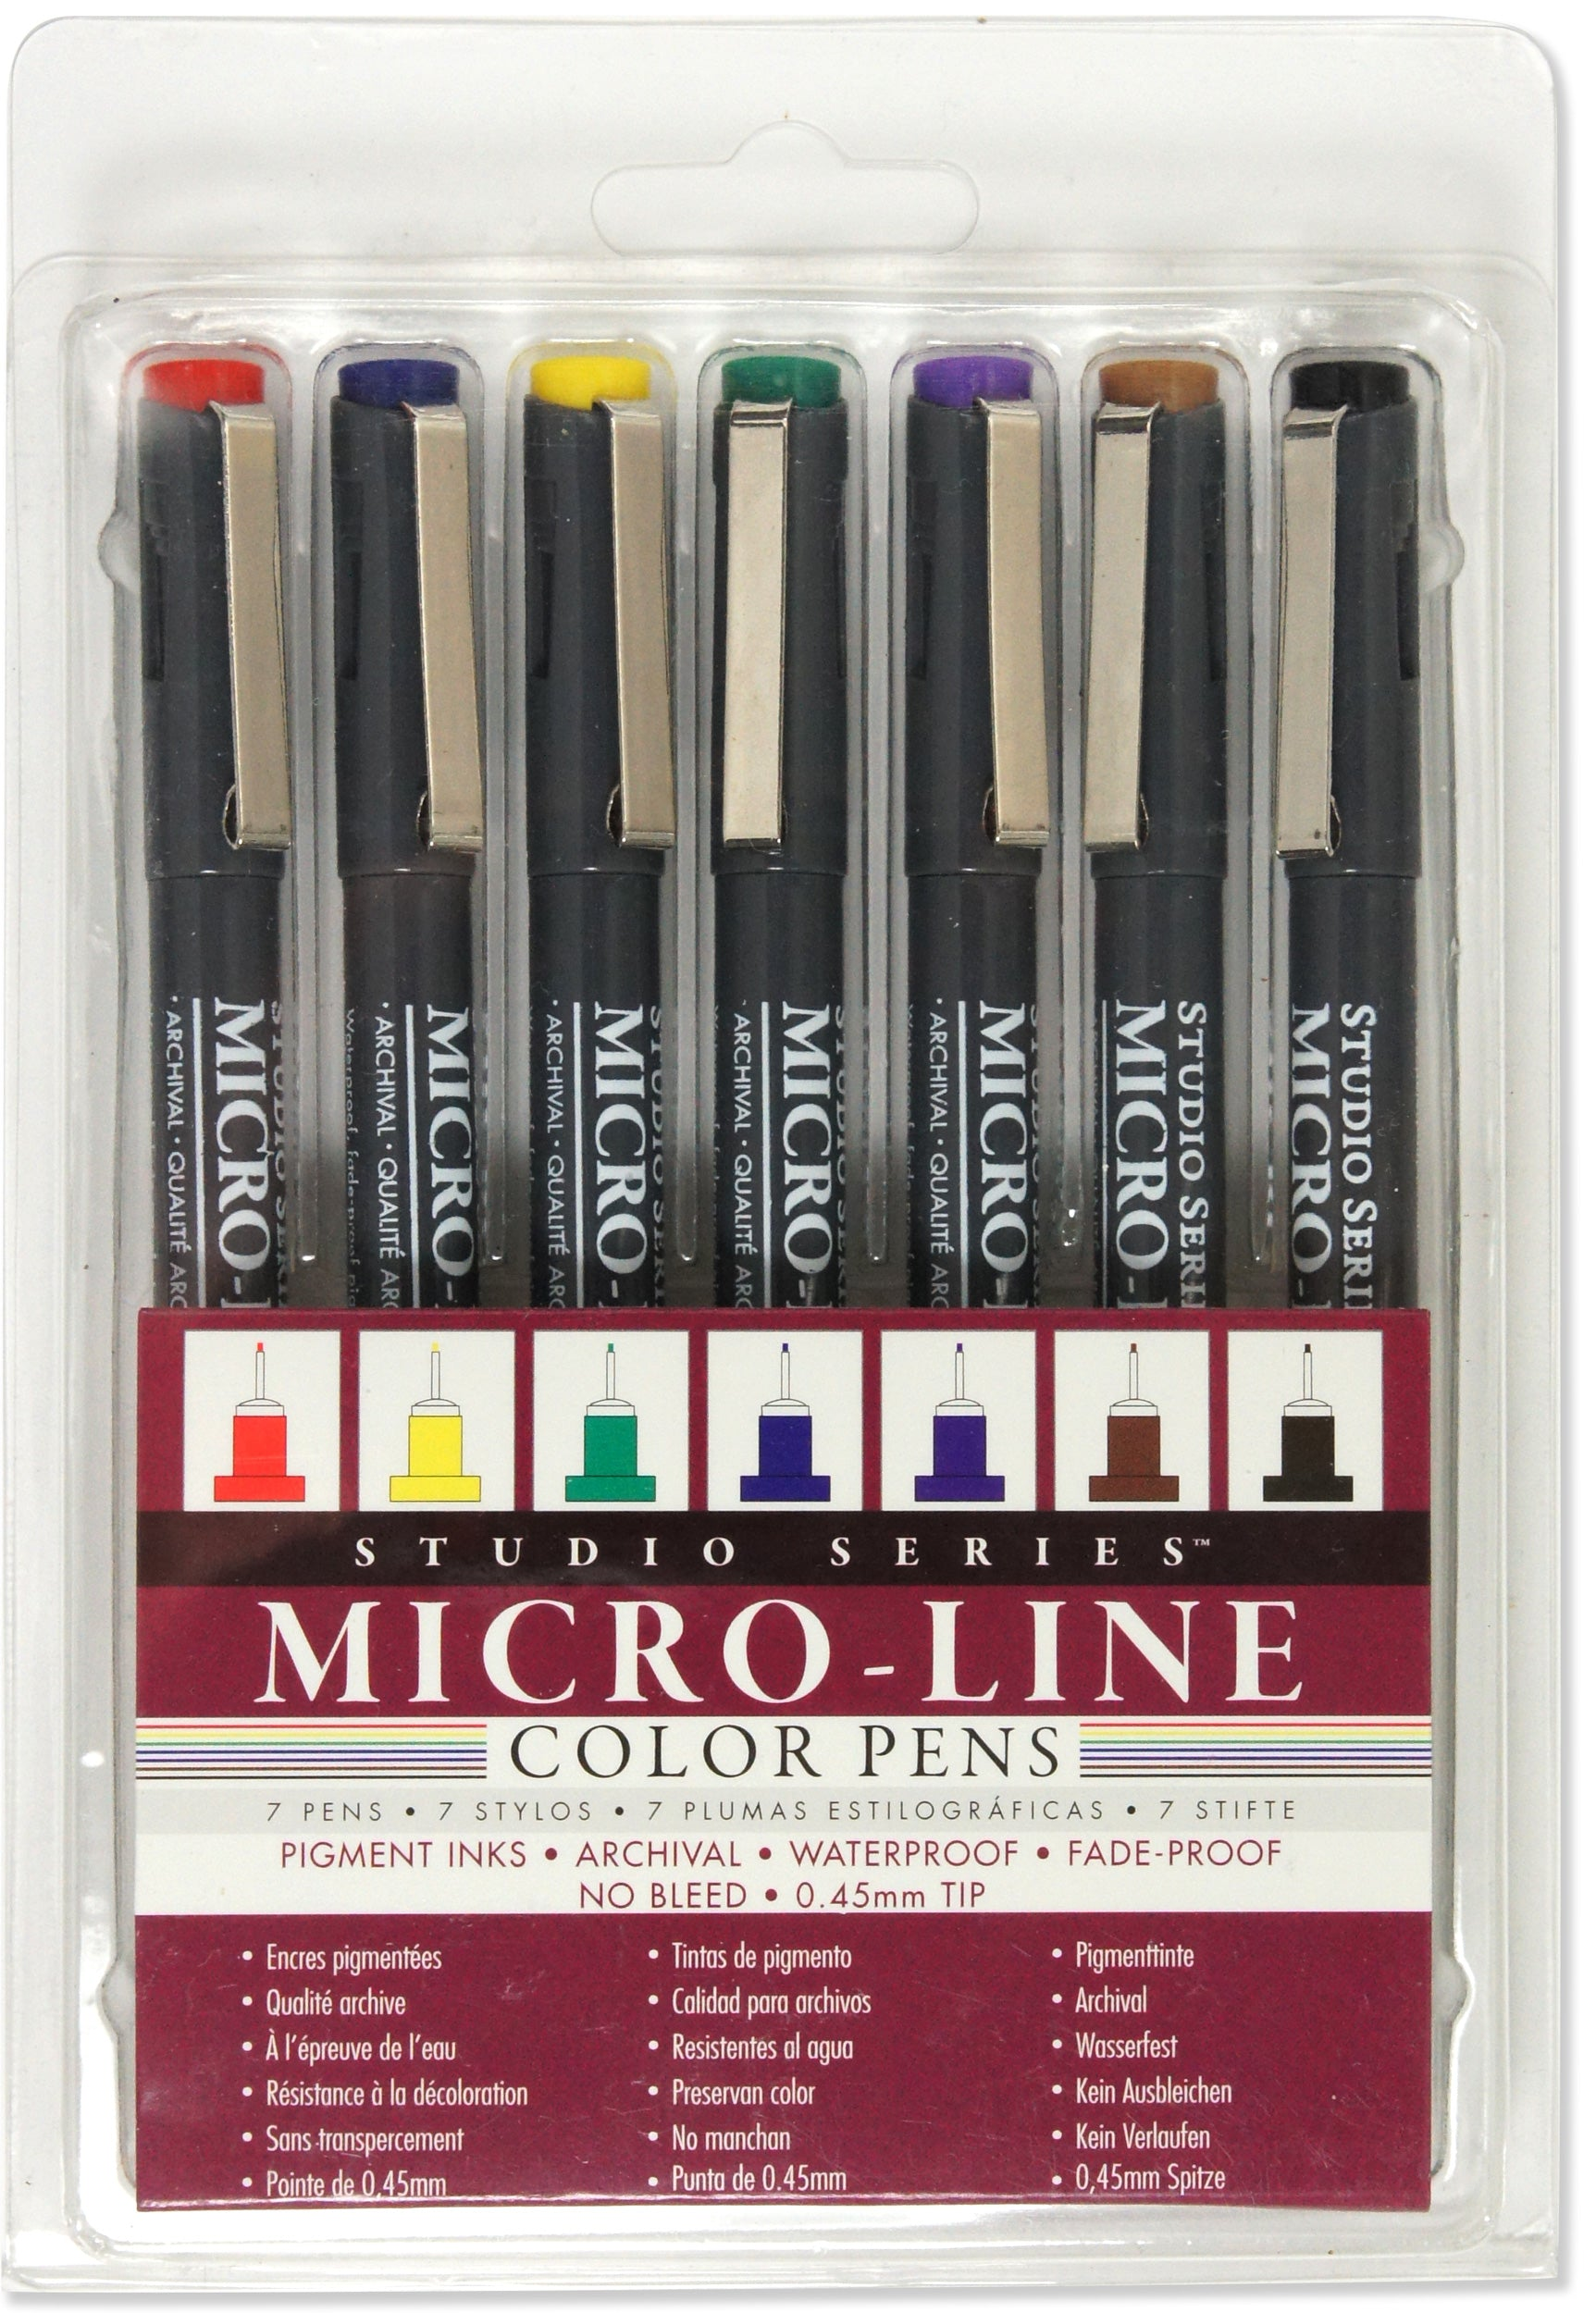 Studio Series Colored Micro-Line Pens (Set of 7) - Heart of the Home PA